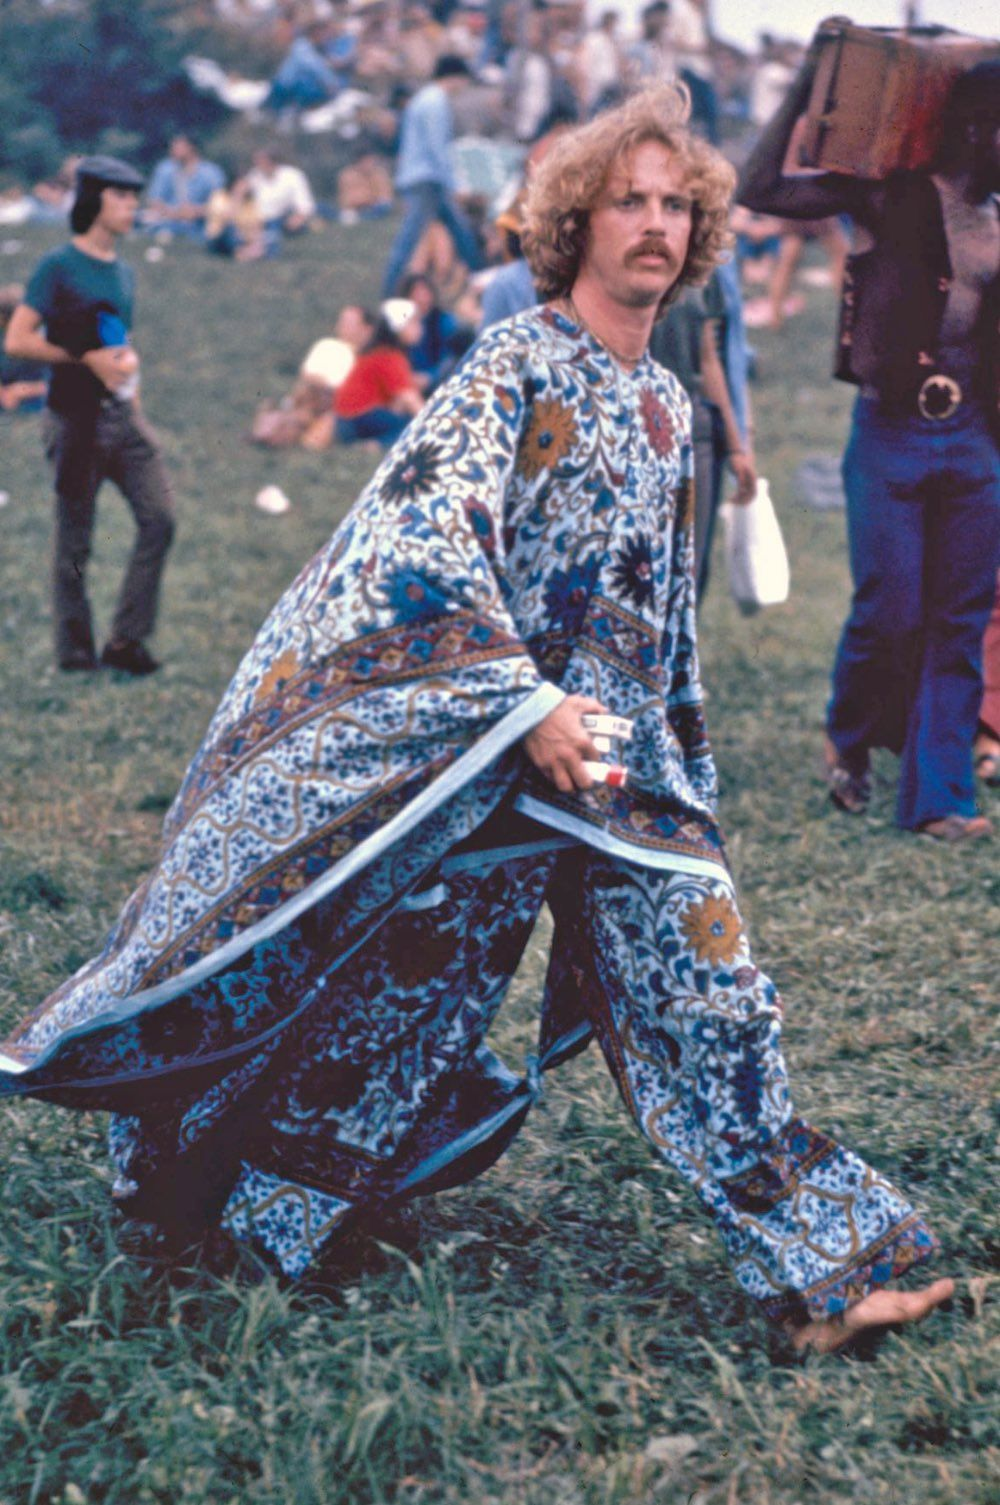 Woodstock Fashion